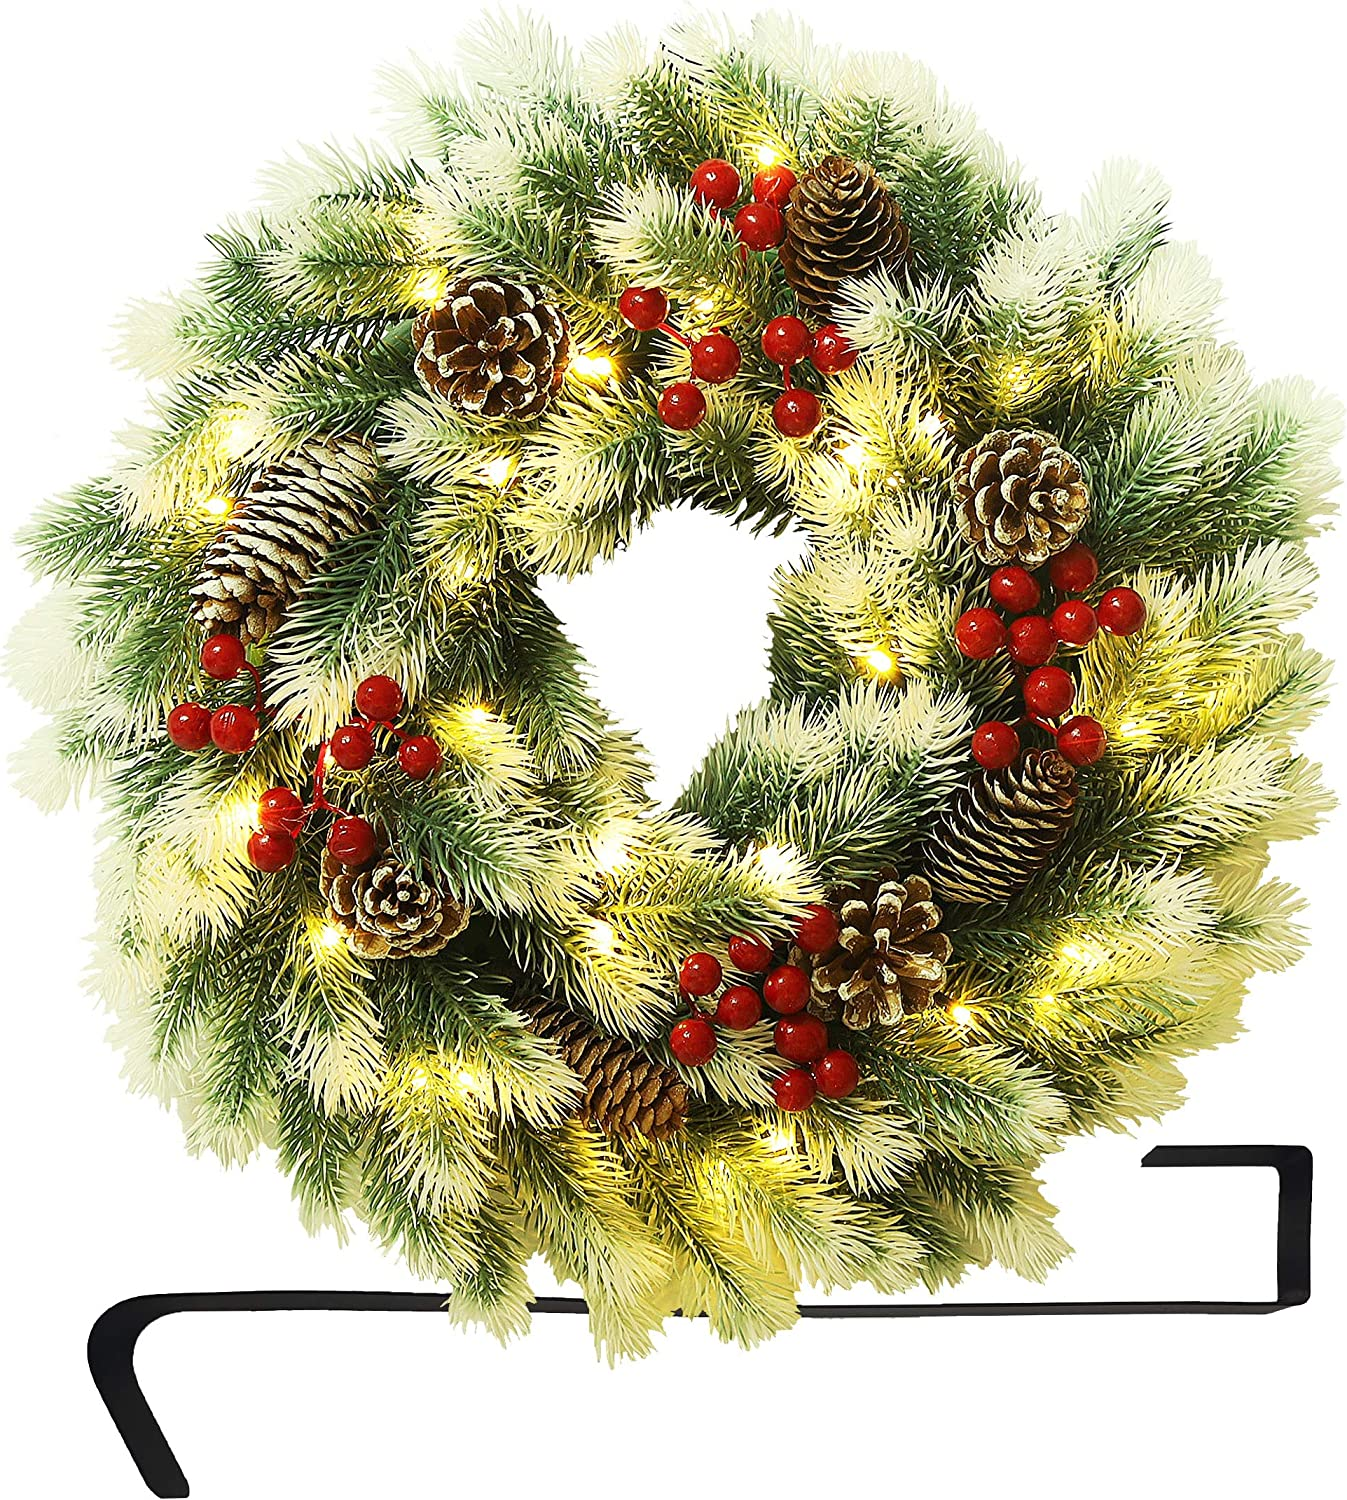 Atdawn 16 Inch Christmas Wreath Outdoor Lighted Christmas Wreath For Front Door Xmas Wreath For Winter Holiday Christmas Party Decorations Home Kitchen